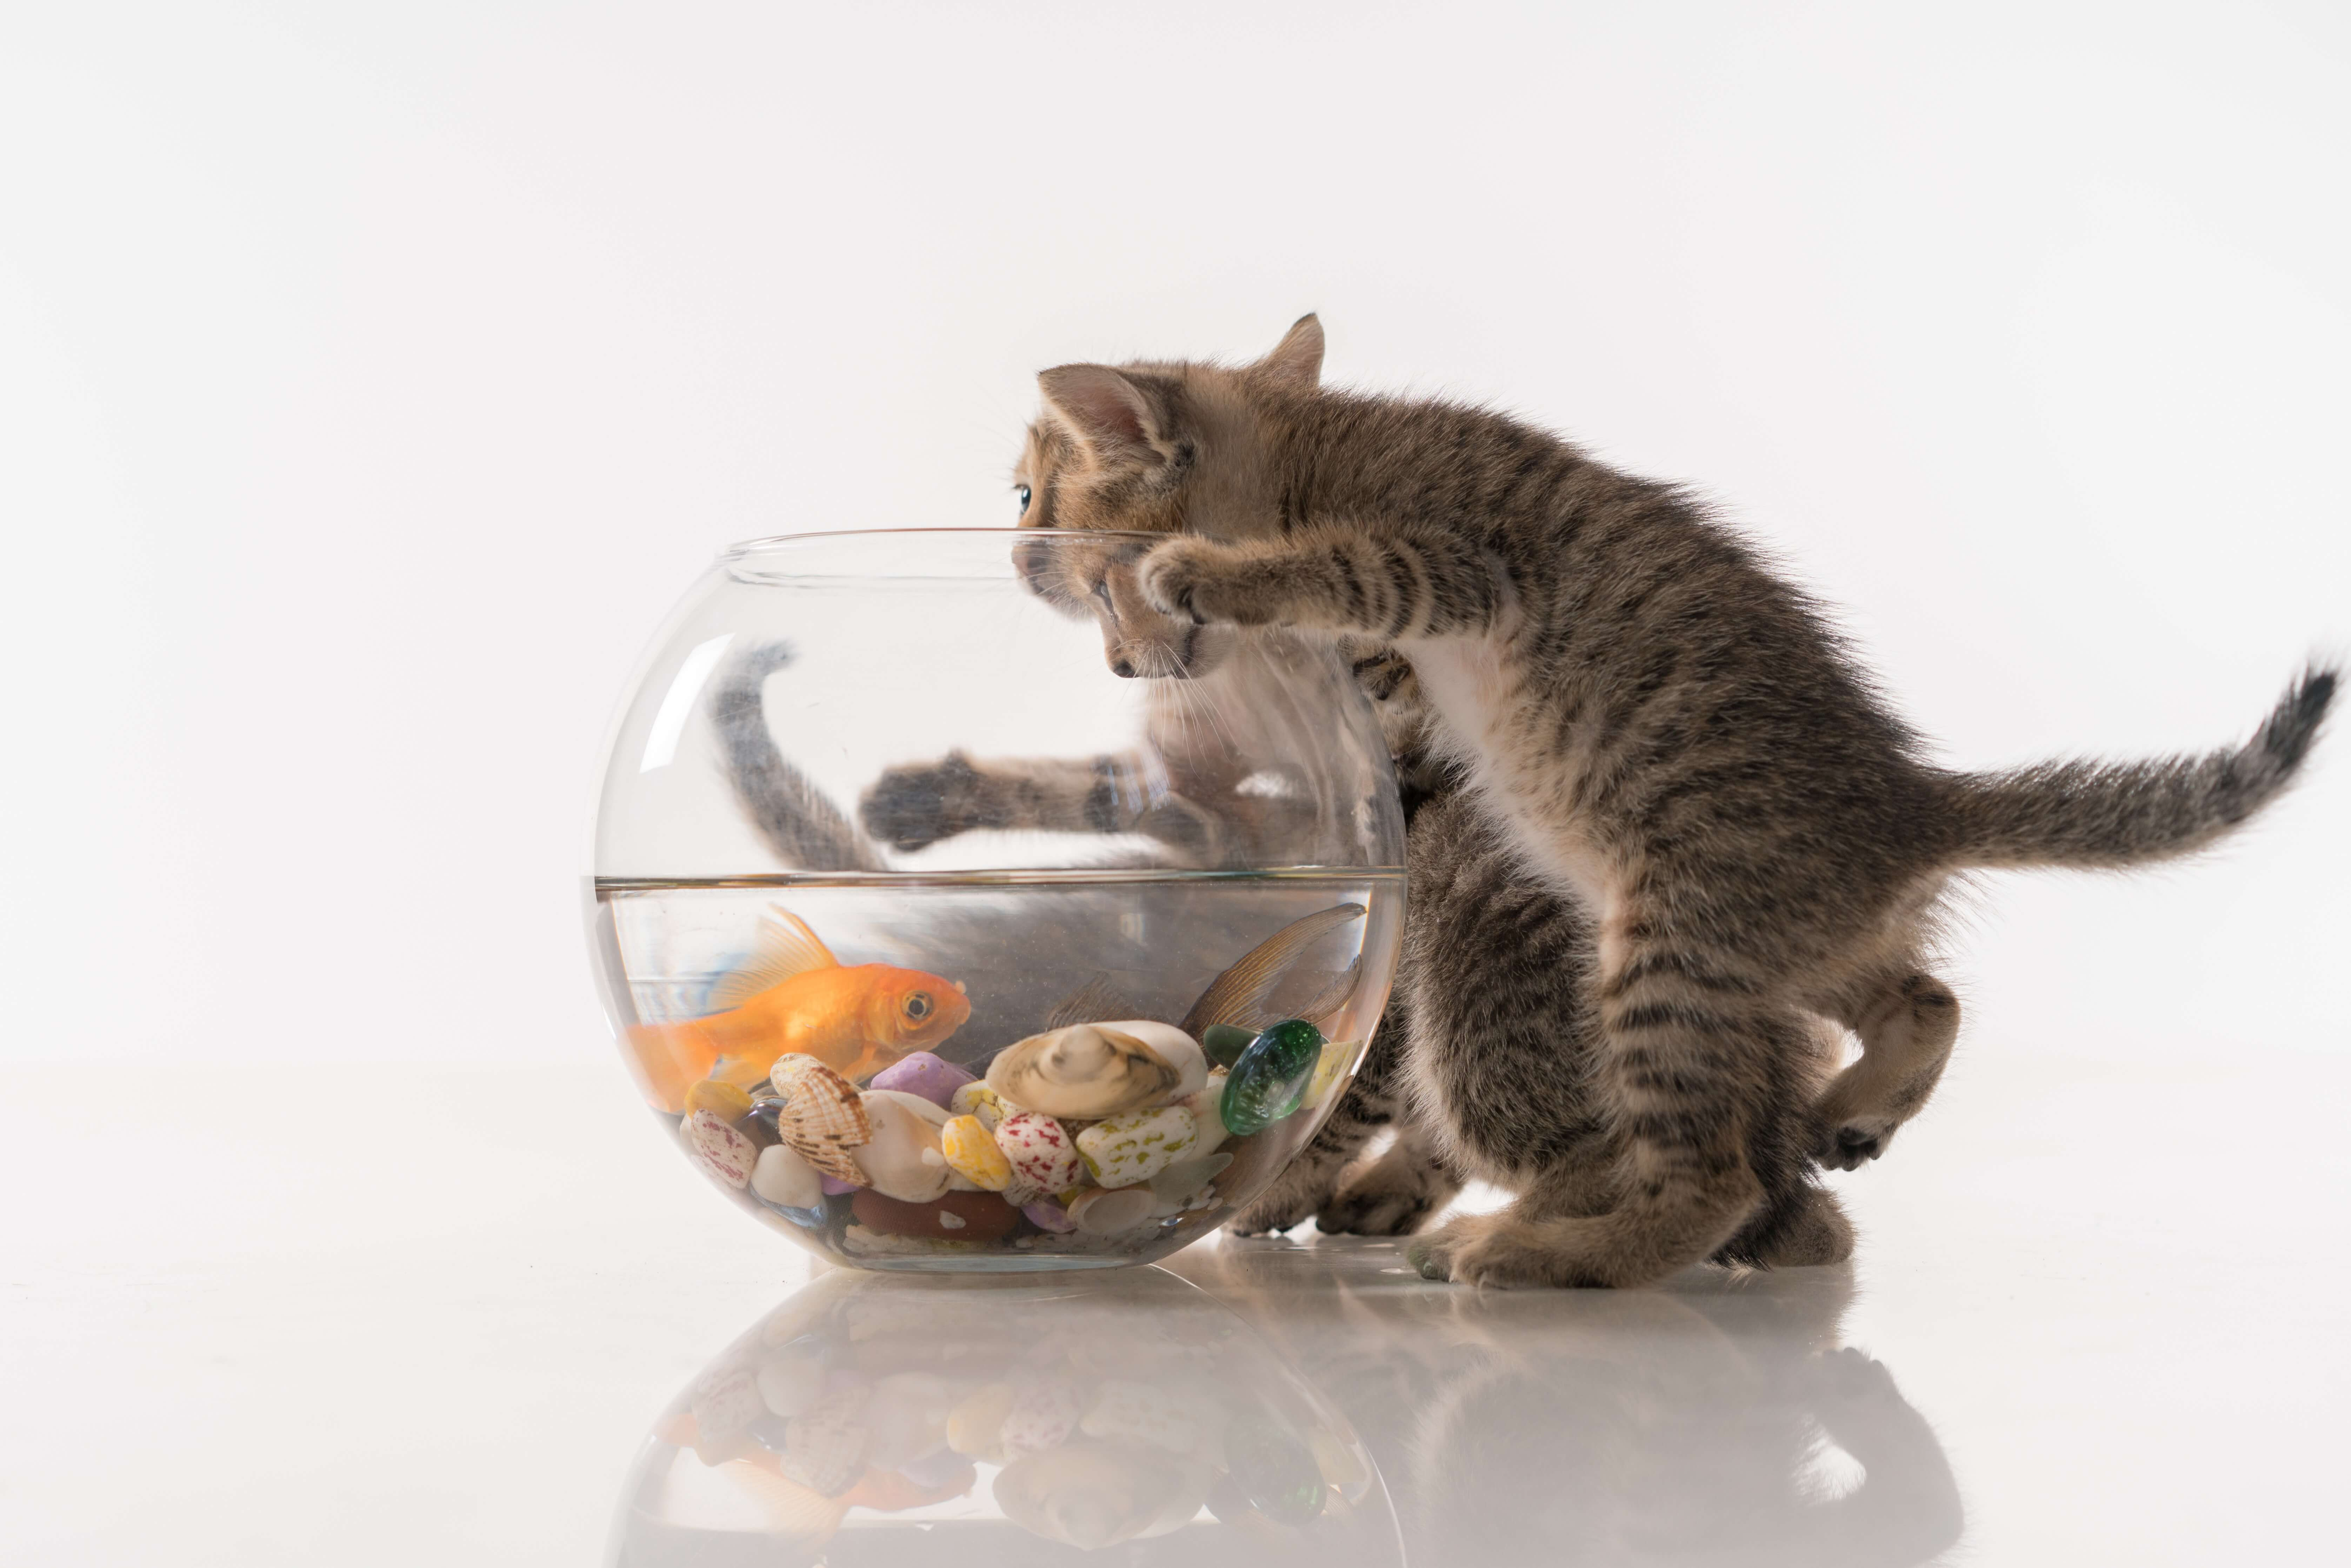 Kittens threatening a goldfish in a bowl